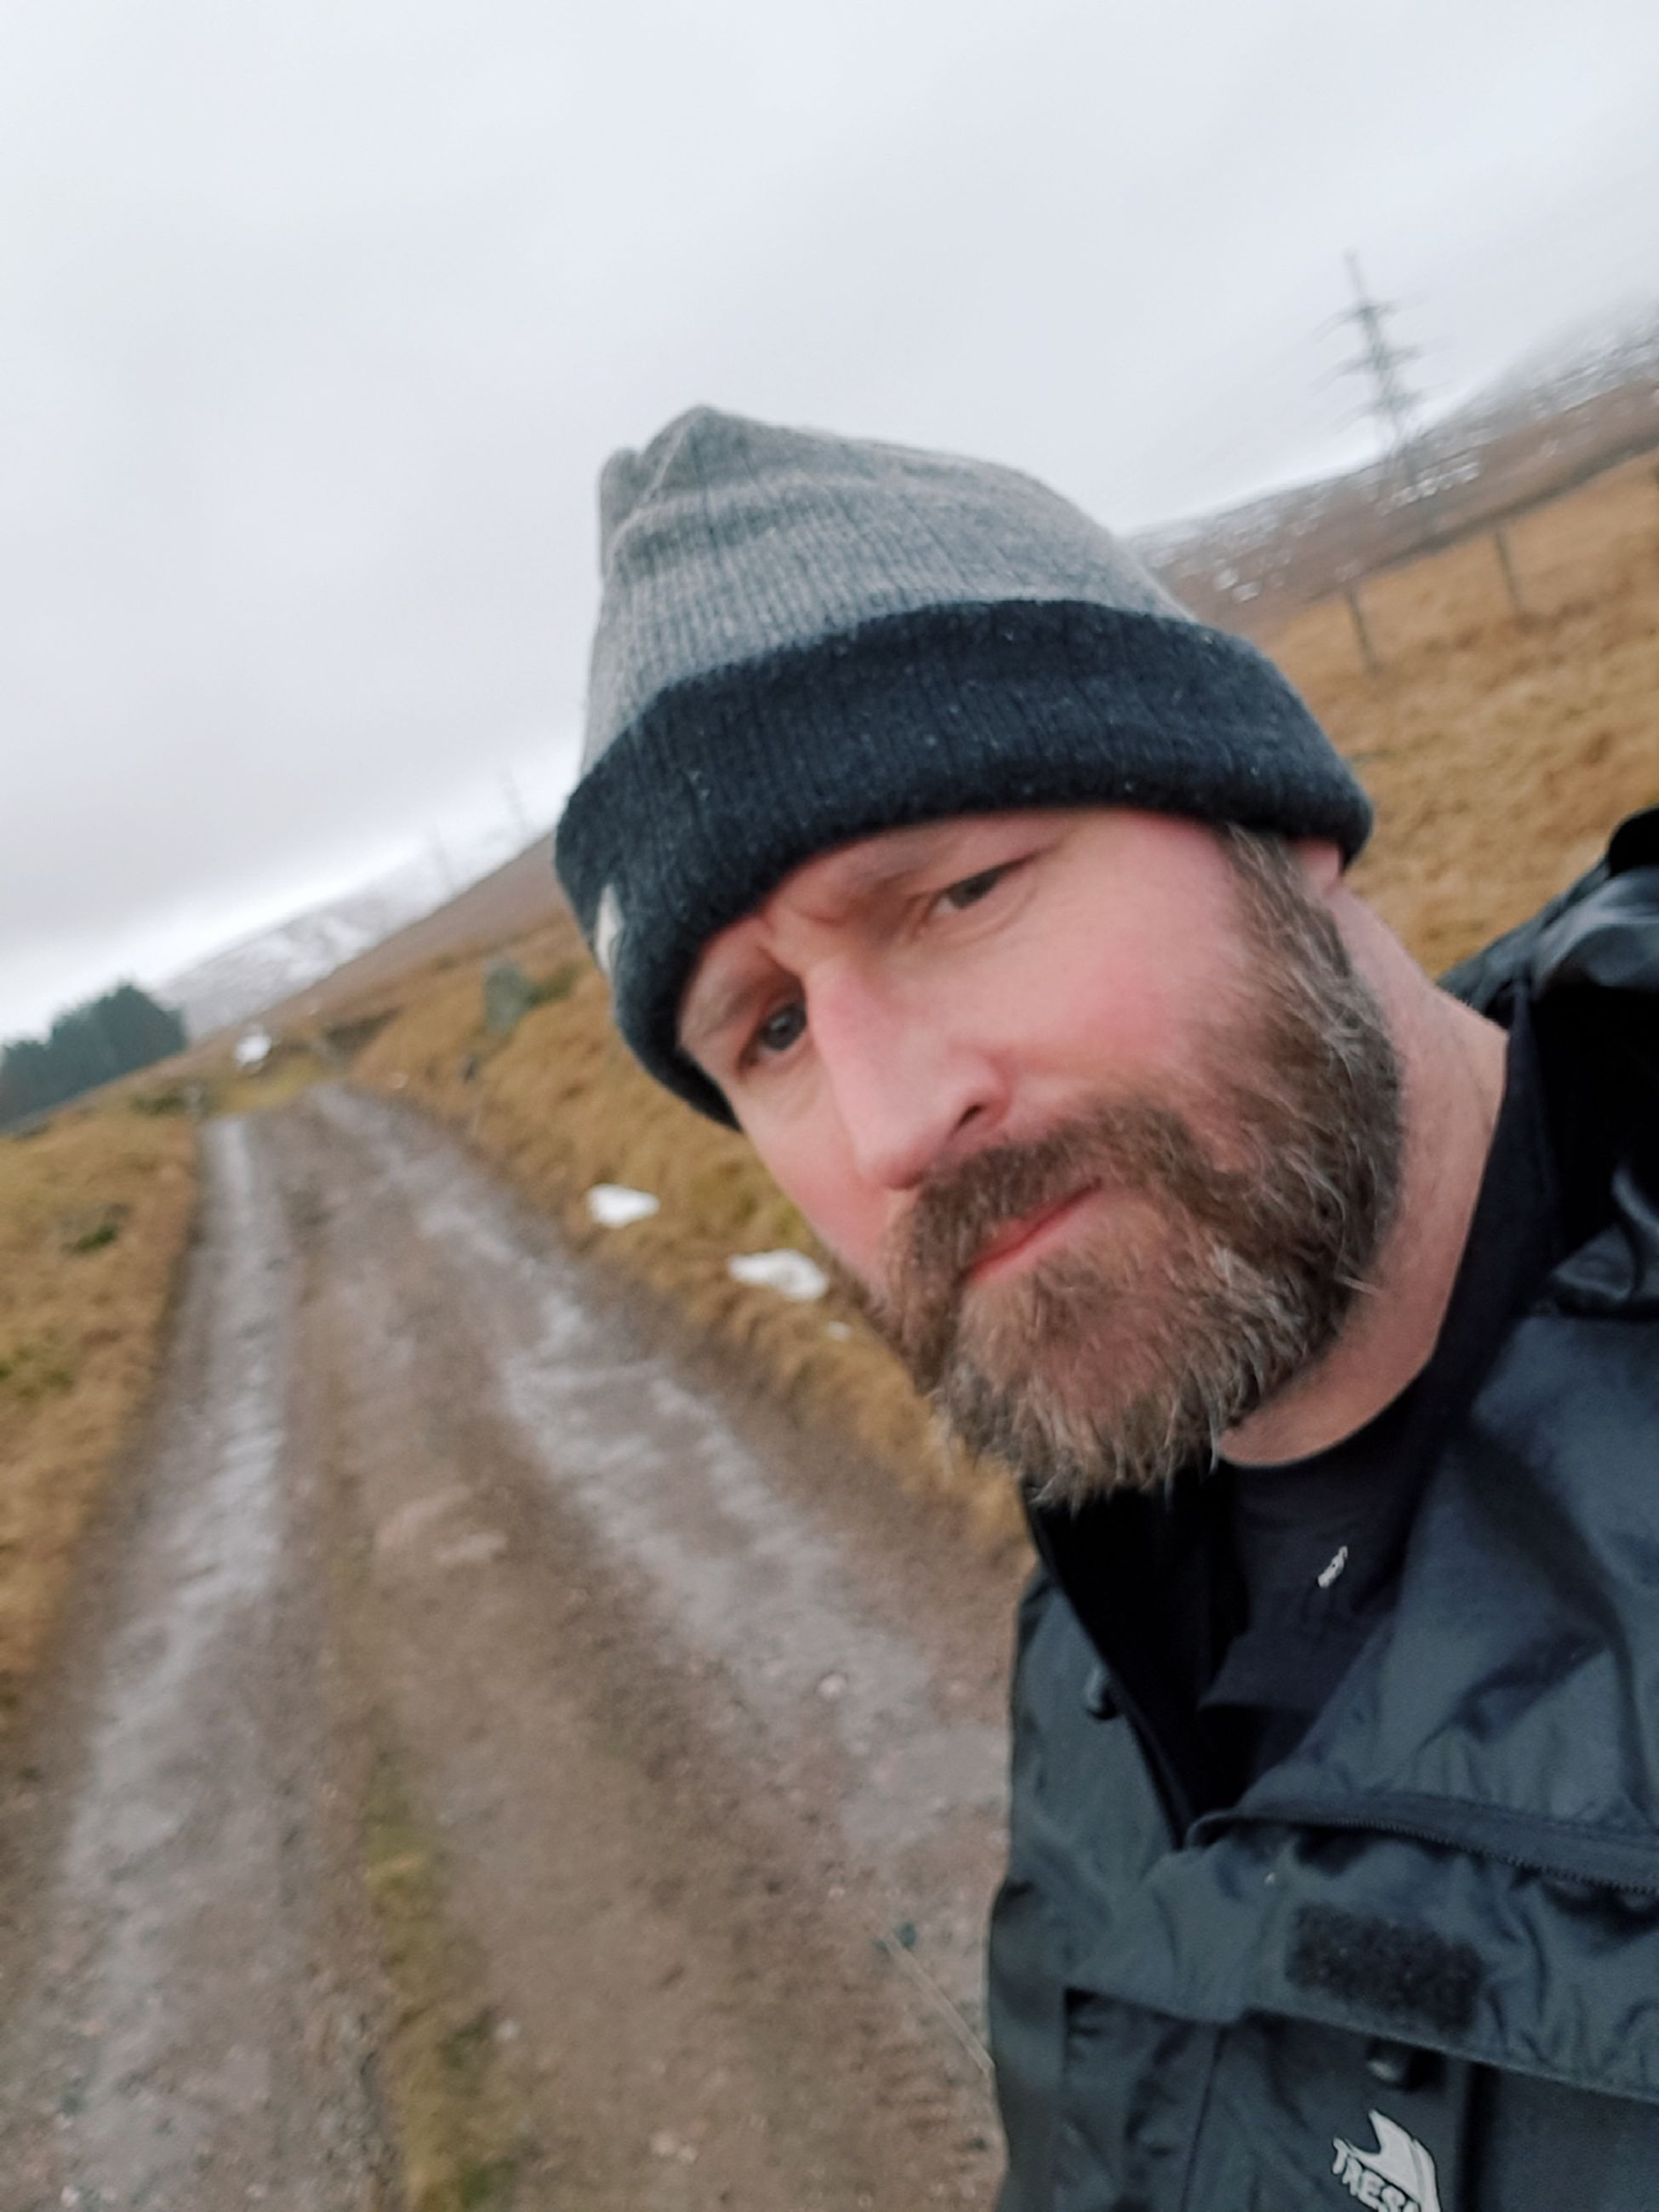 beard, facial hair, portrait, one person, clothing, men, lifestyles, knit hat, winter, headshot, cold temperature, looking at camera, road, real people, hat, males, standing, warm clothing, outdoors, mature men